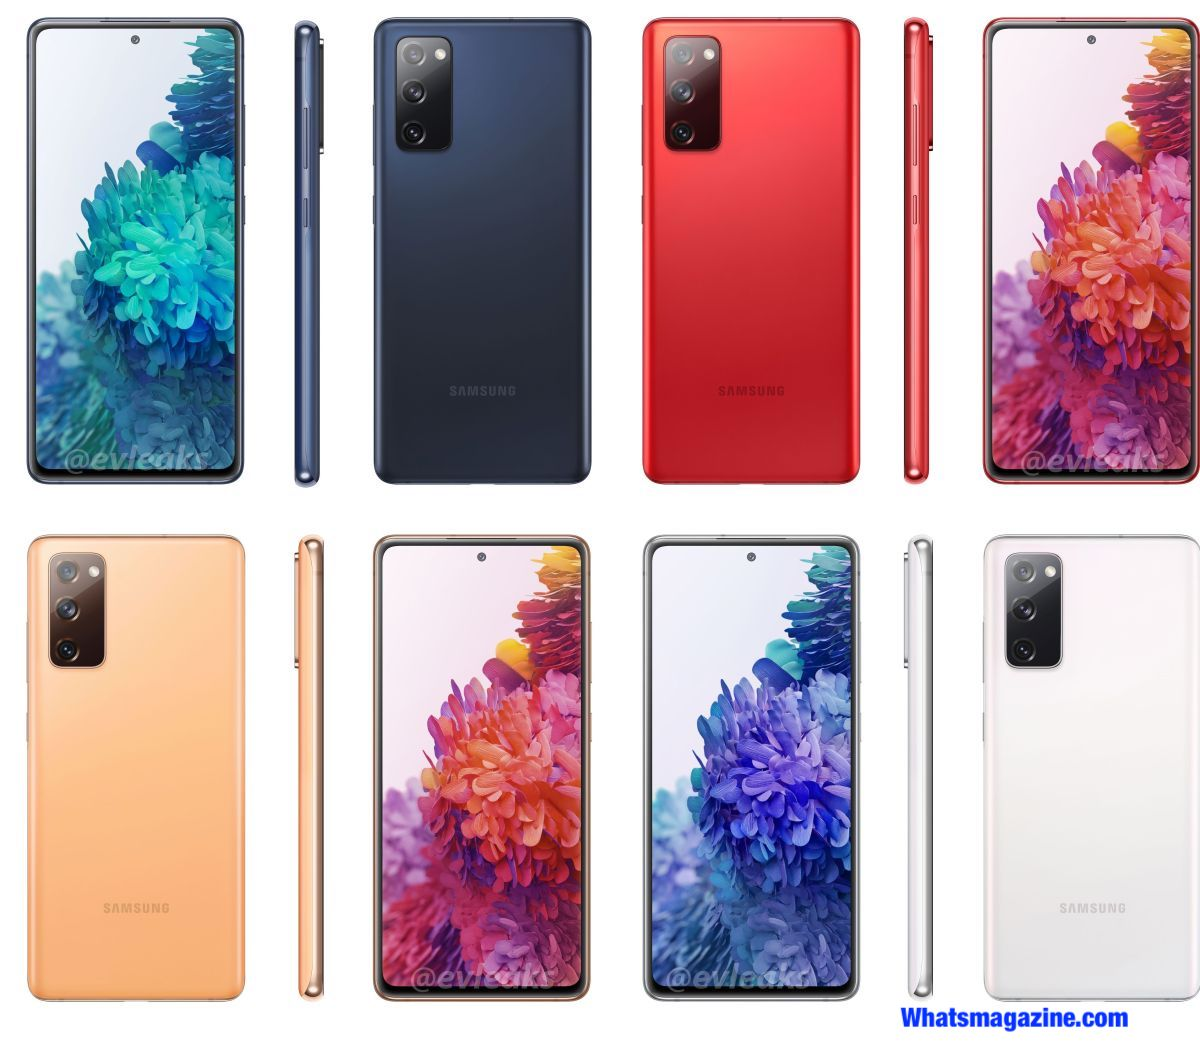 Samsung's Galaxy 'S' series has always been at the top of the Android phones. In fact, they are the phones that all loaded with all features, come in multiple screen sizes, and even available on all major carriers.